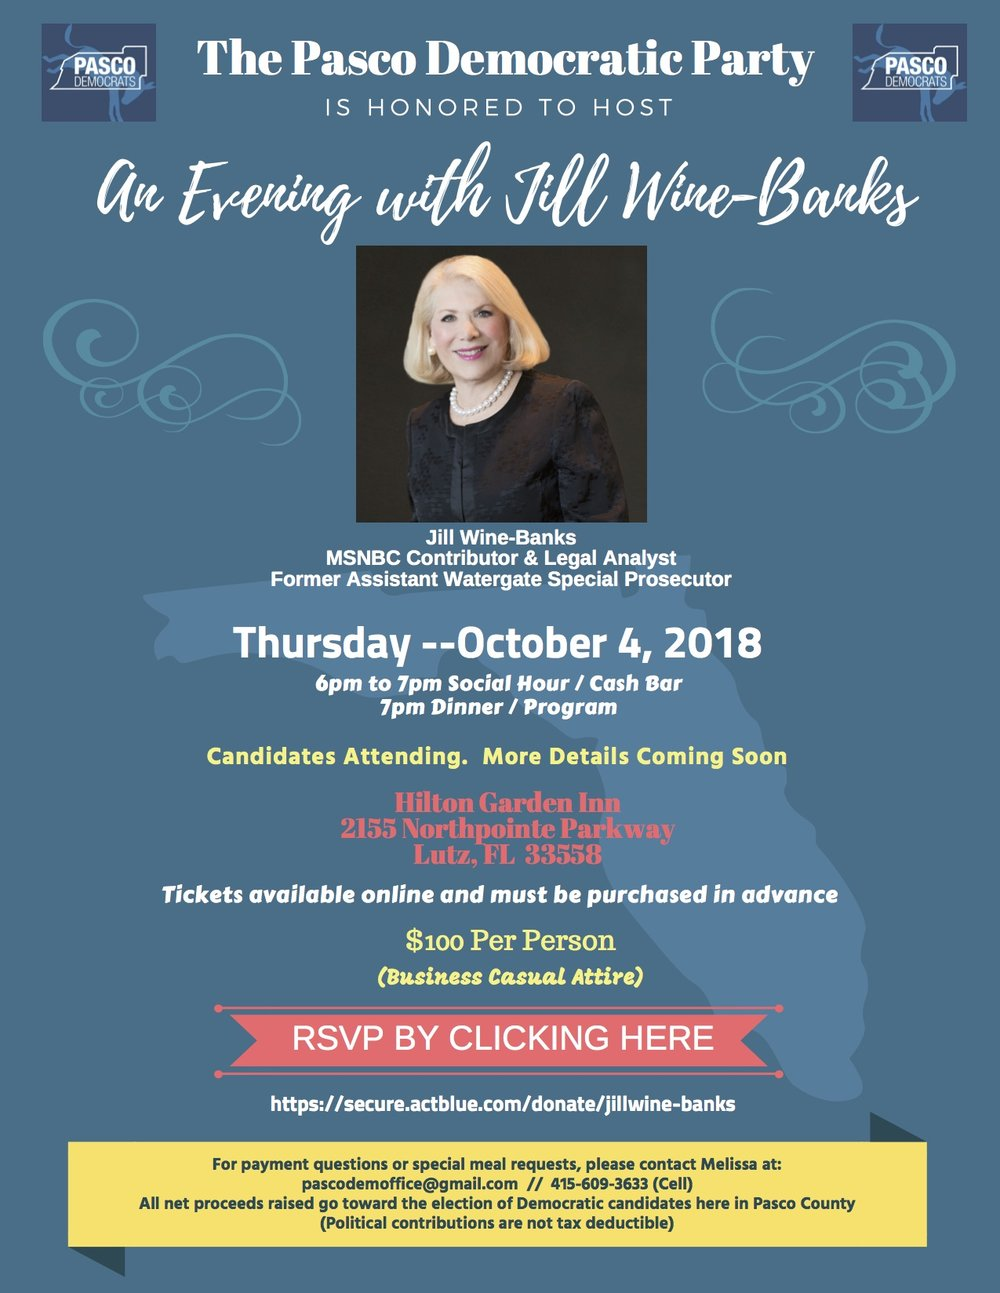 Jill Wine-Banks Fundraiser Flyer.jpg